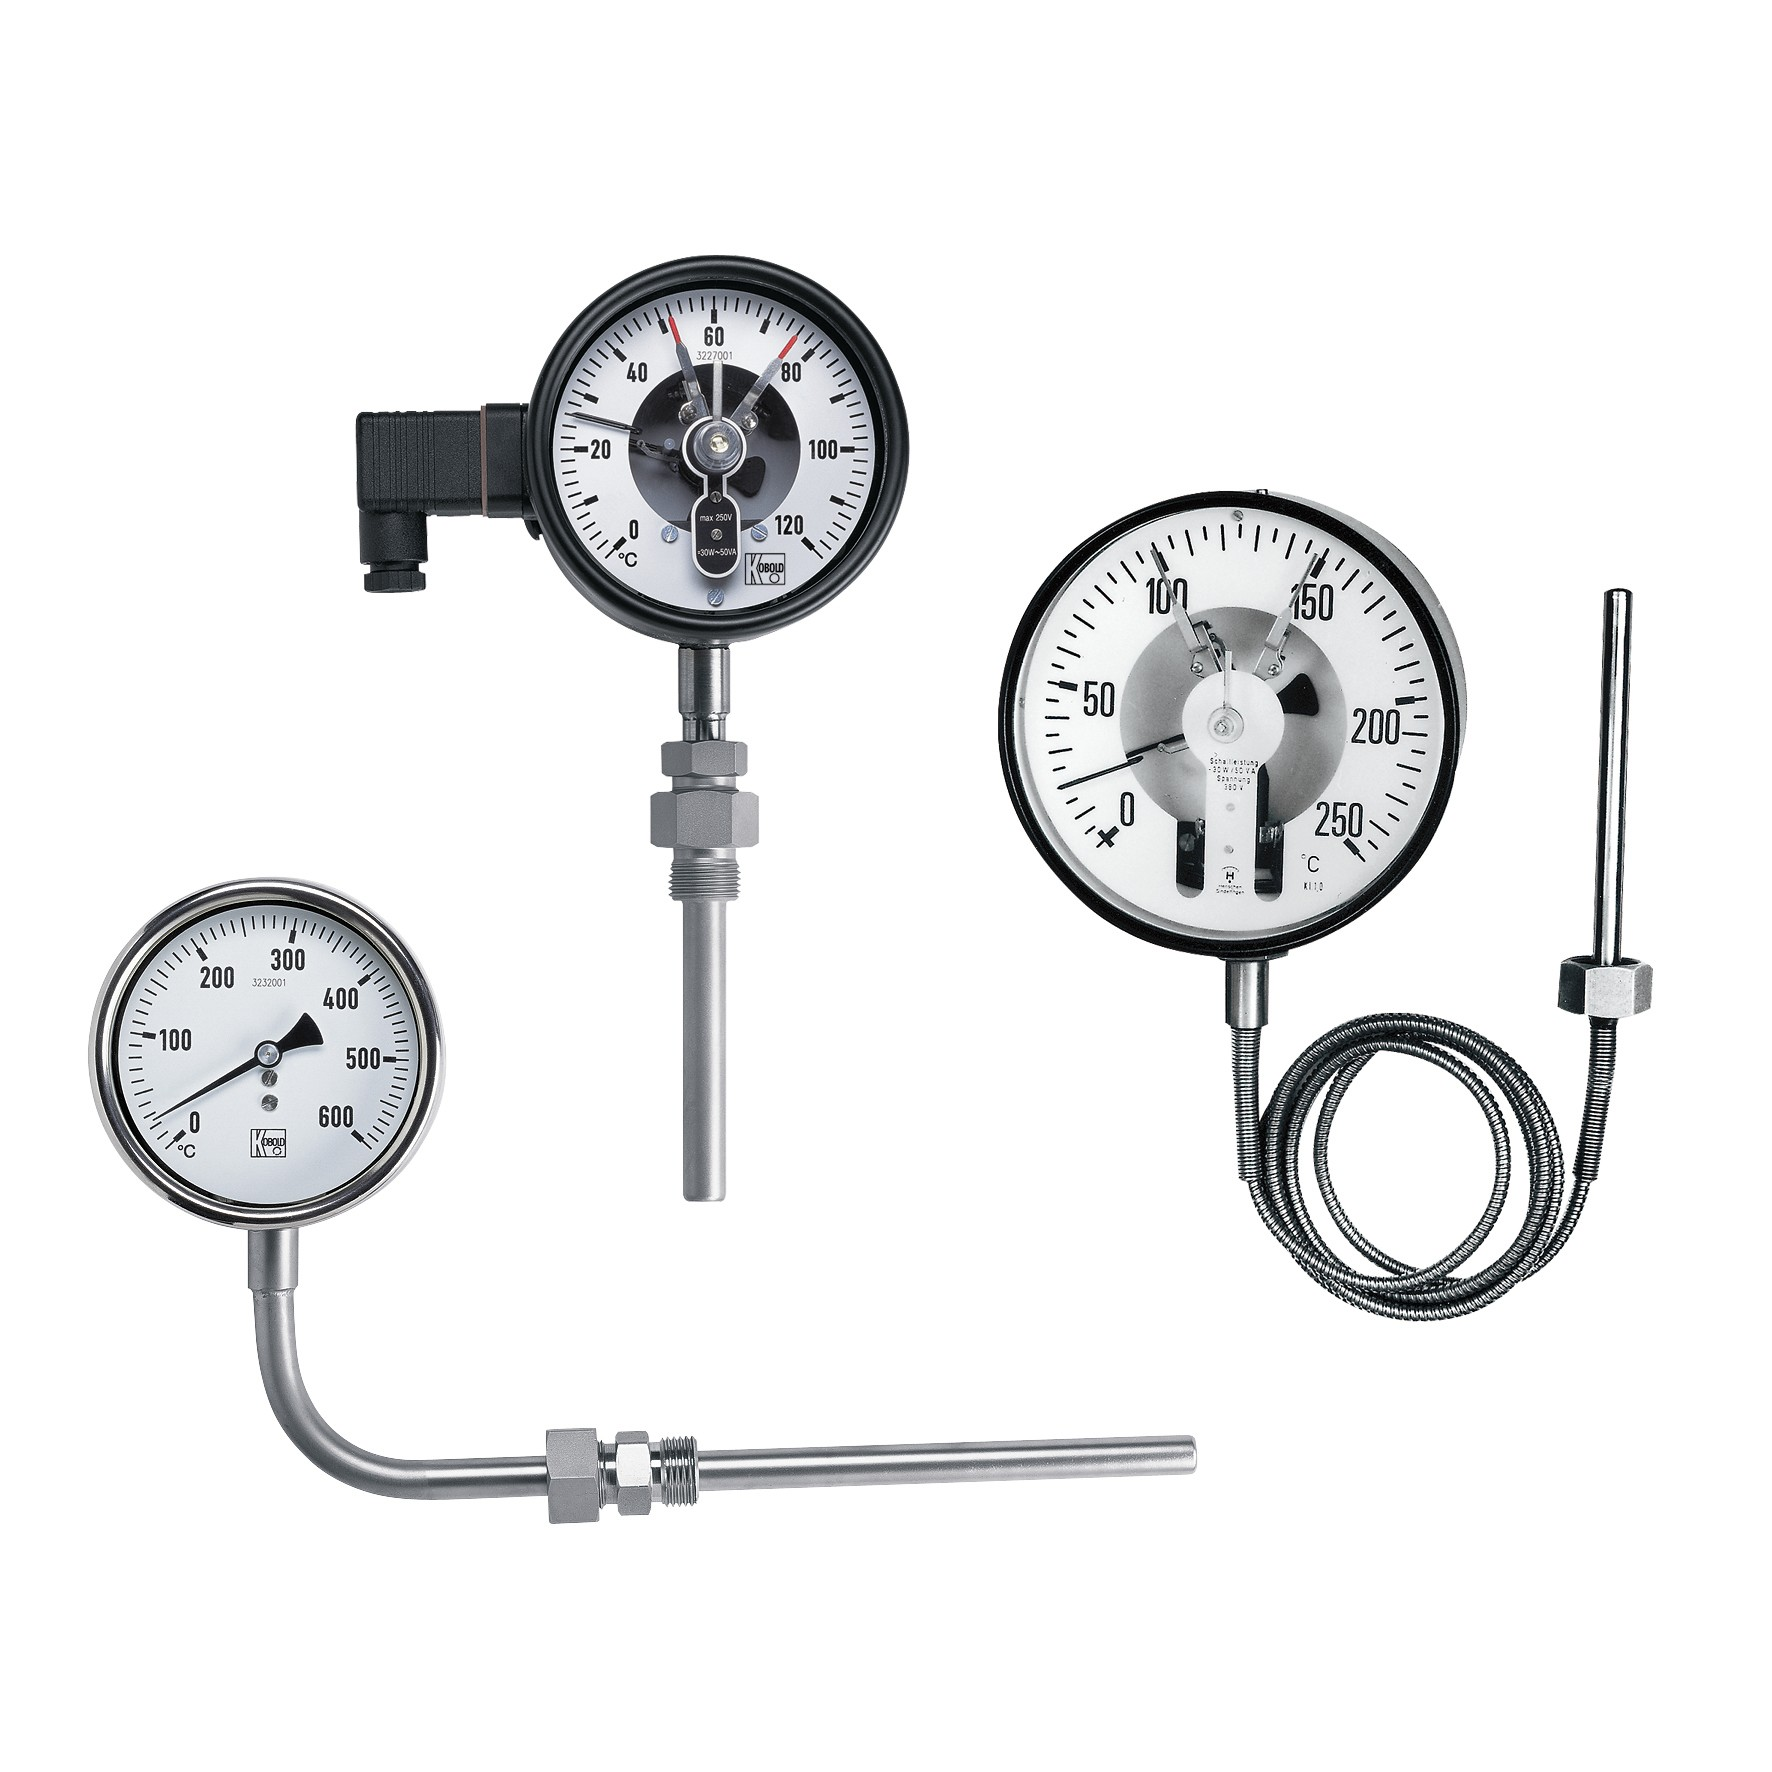 Industrial AnalogueTemperature Measurement